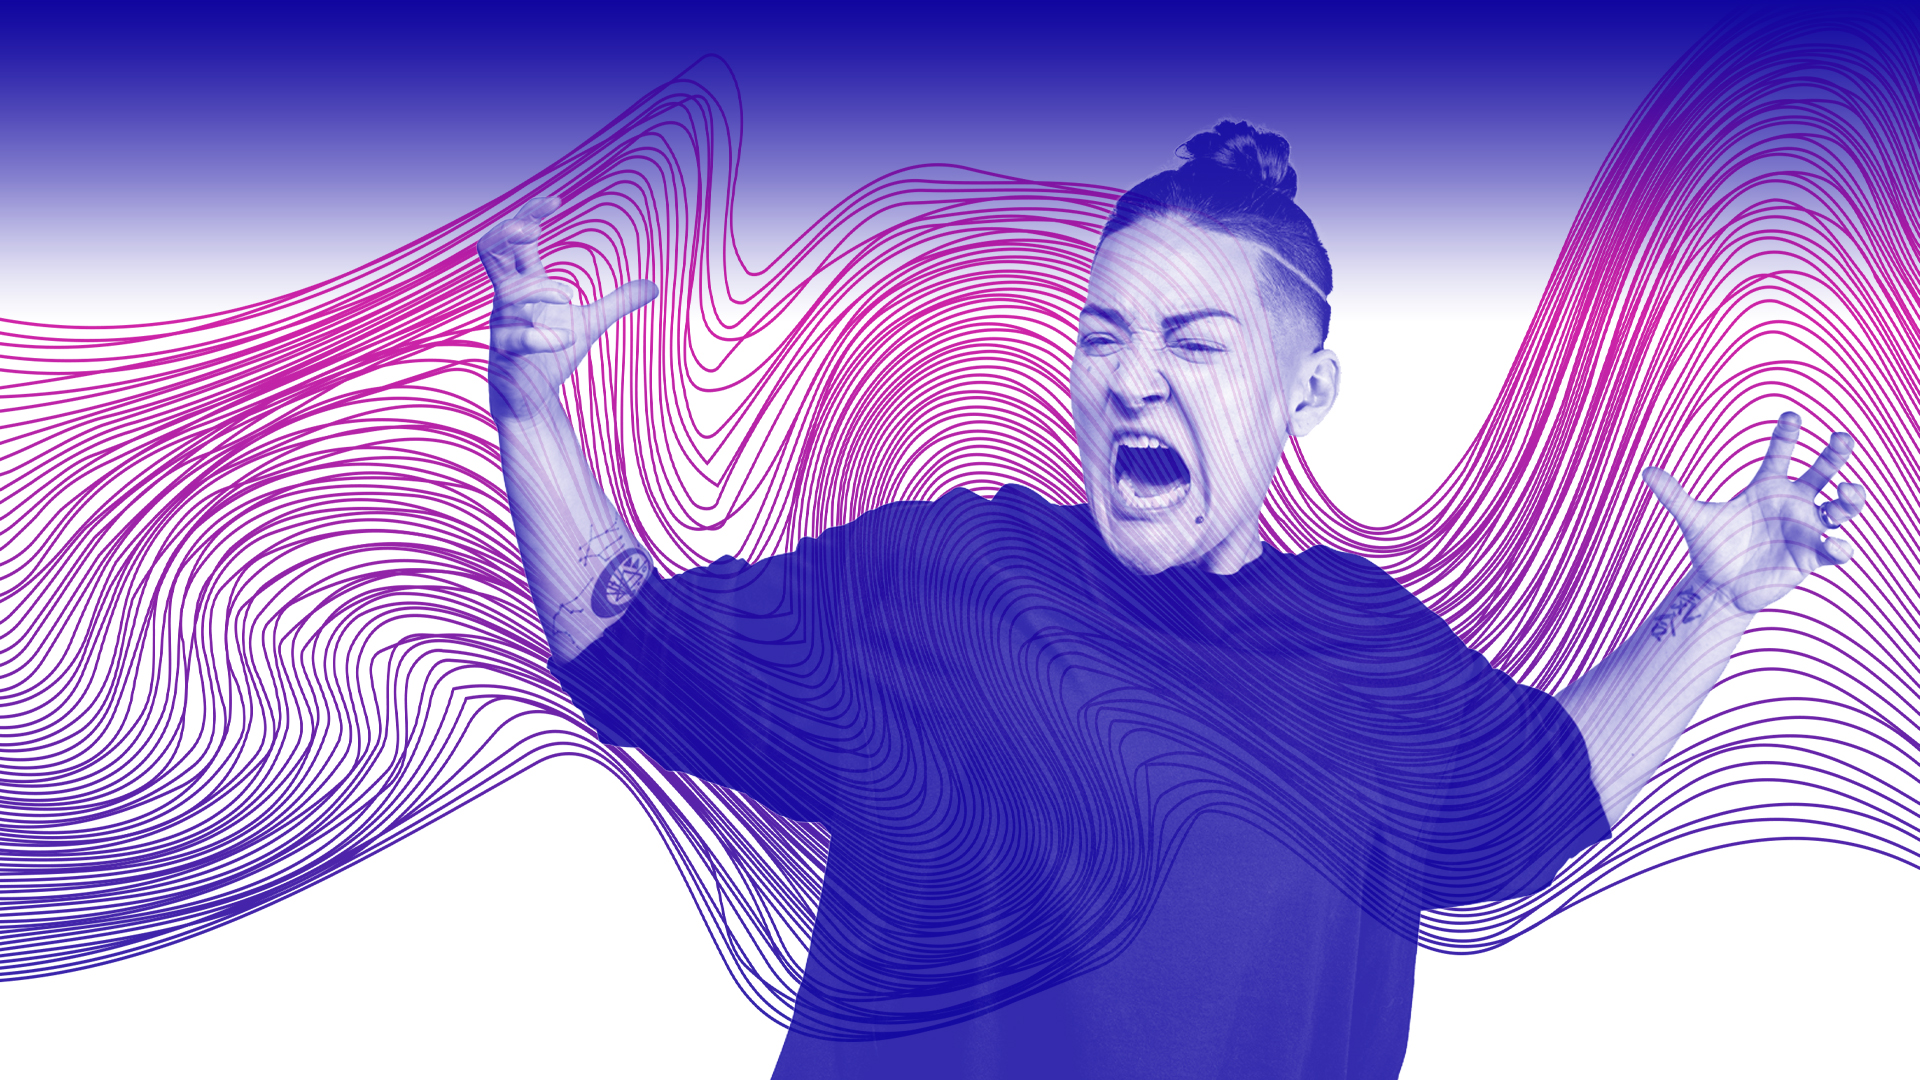 Decorative image of yelling figure on background of wavy lines